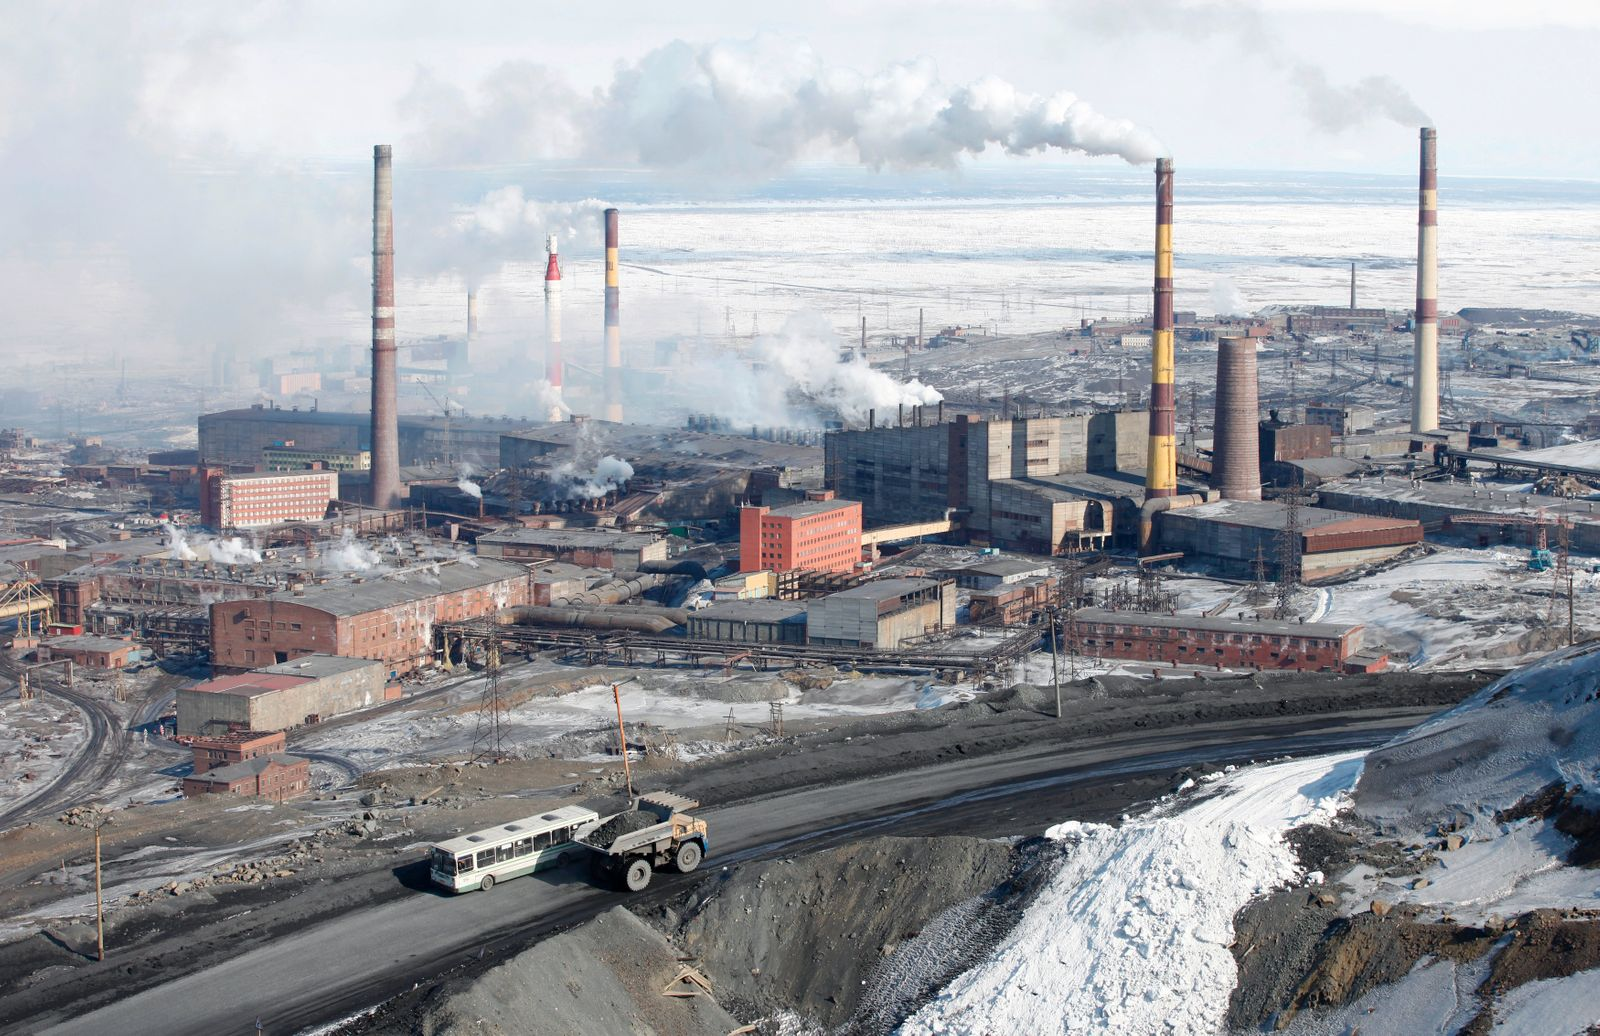 A general view of Norilsk Nickel's nickel plant in the Russia's Arctic city of Norilsk